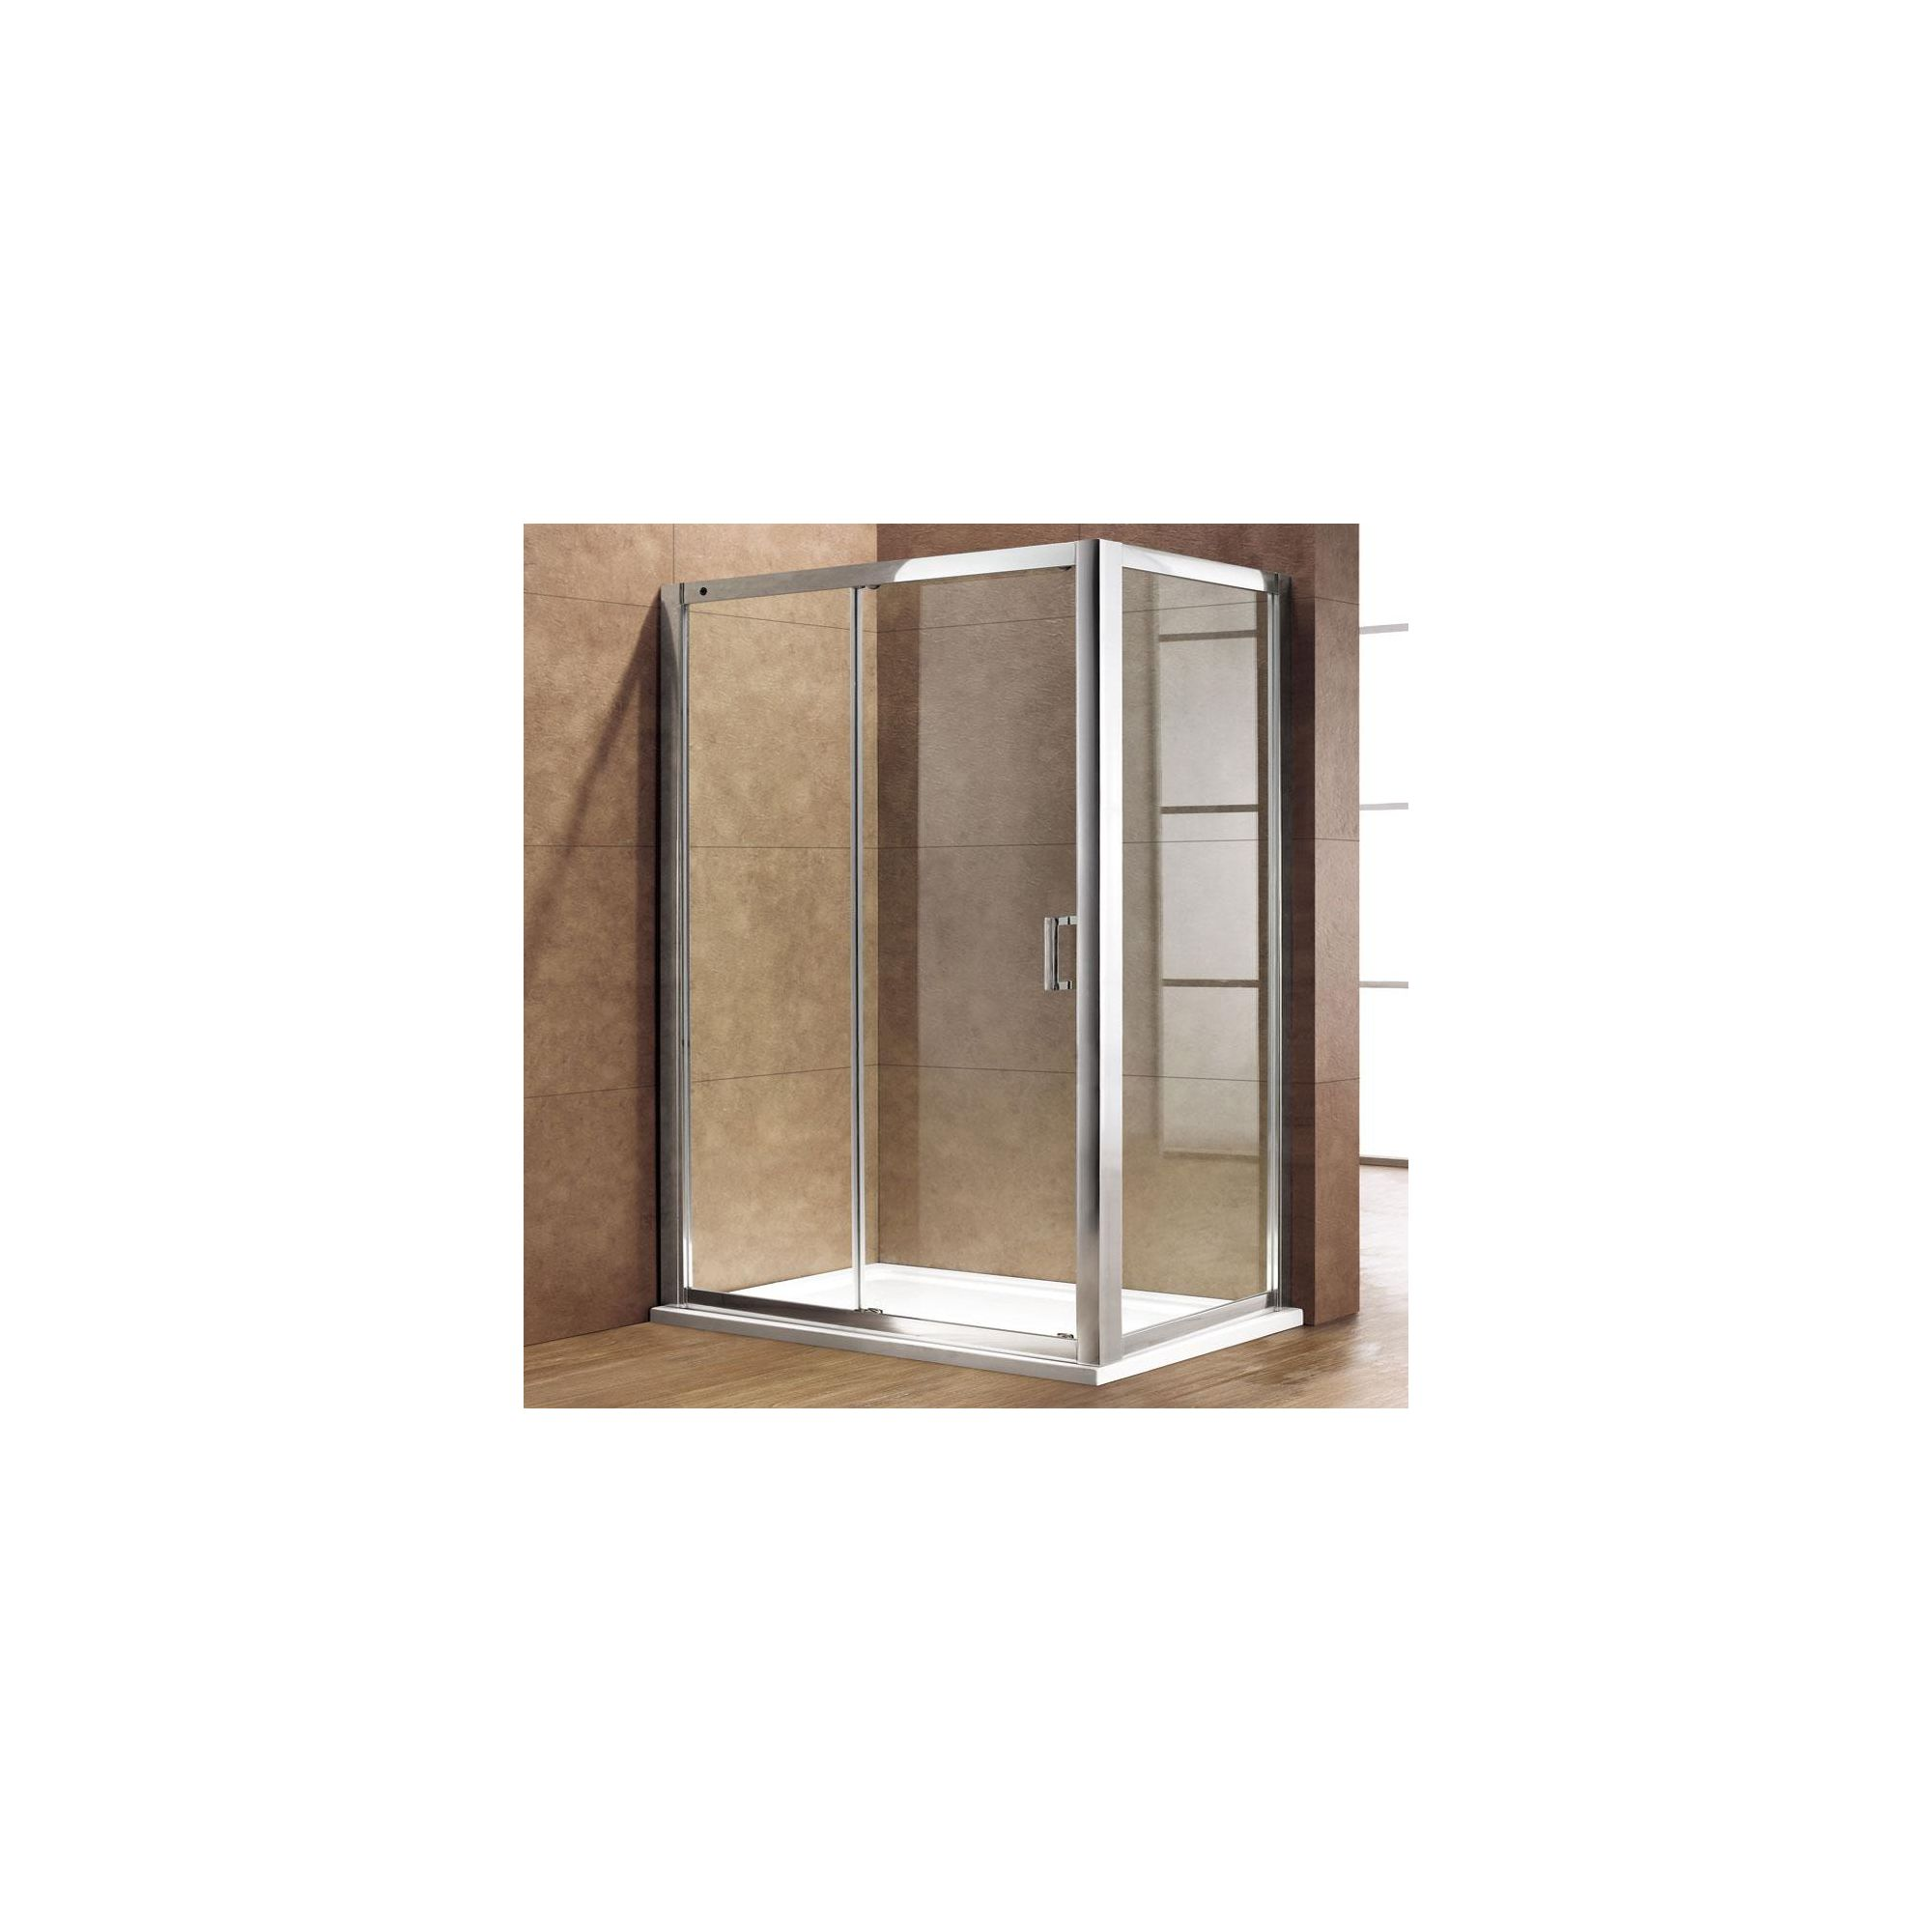 Duchy Premium Single Sliding Door Shower Enclosure, 1600mm x 760mm, 8mm Glass, Low Profile Tray at Tesco Direct